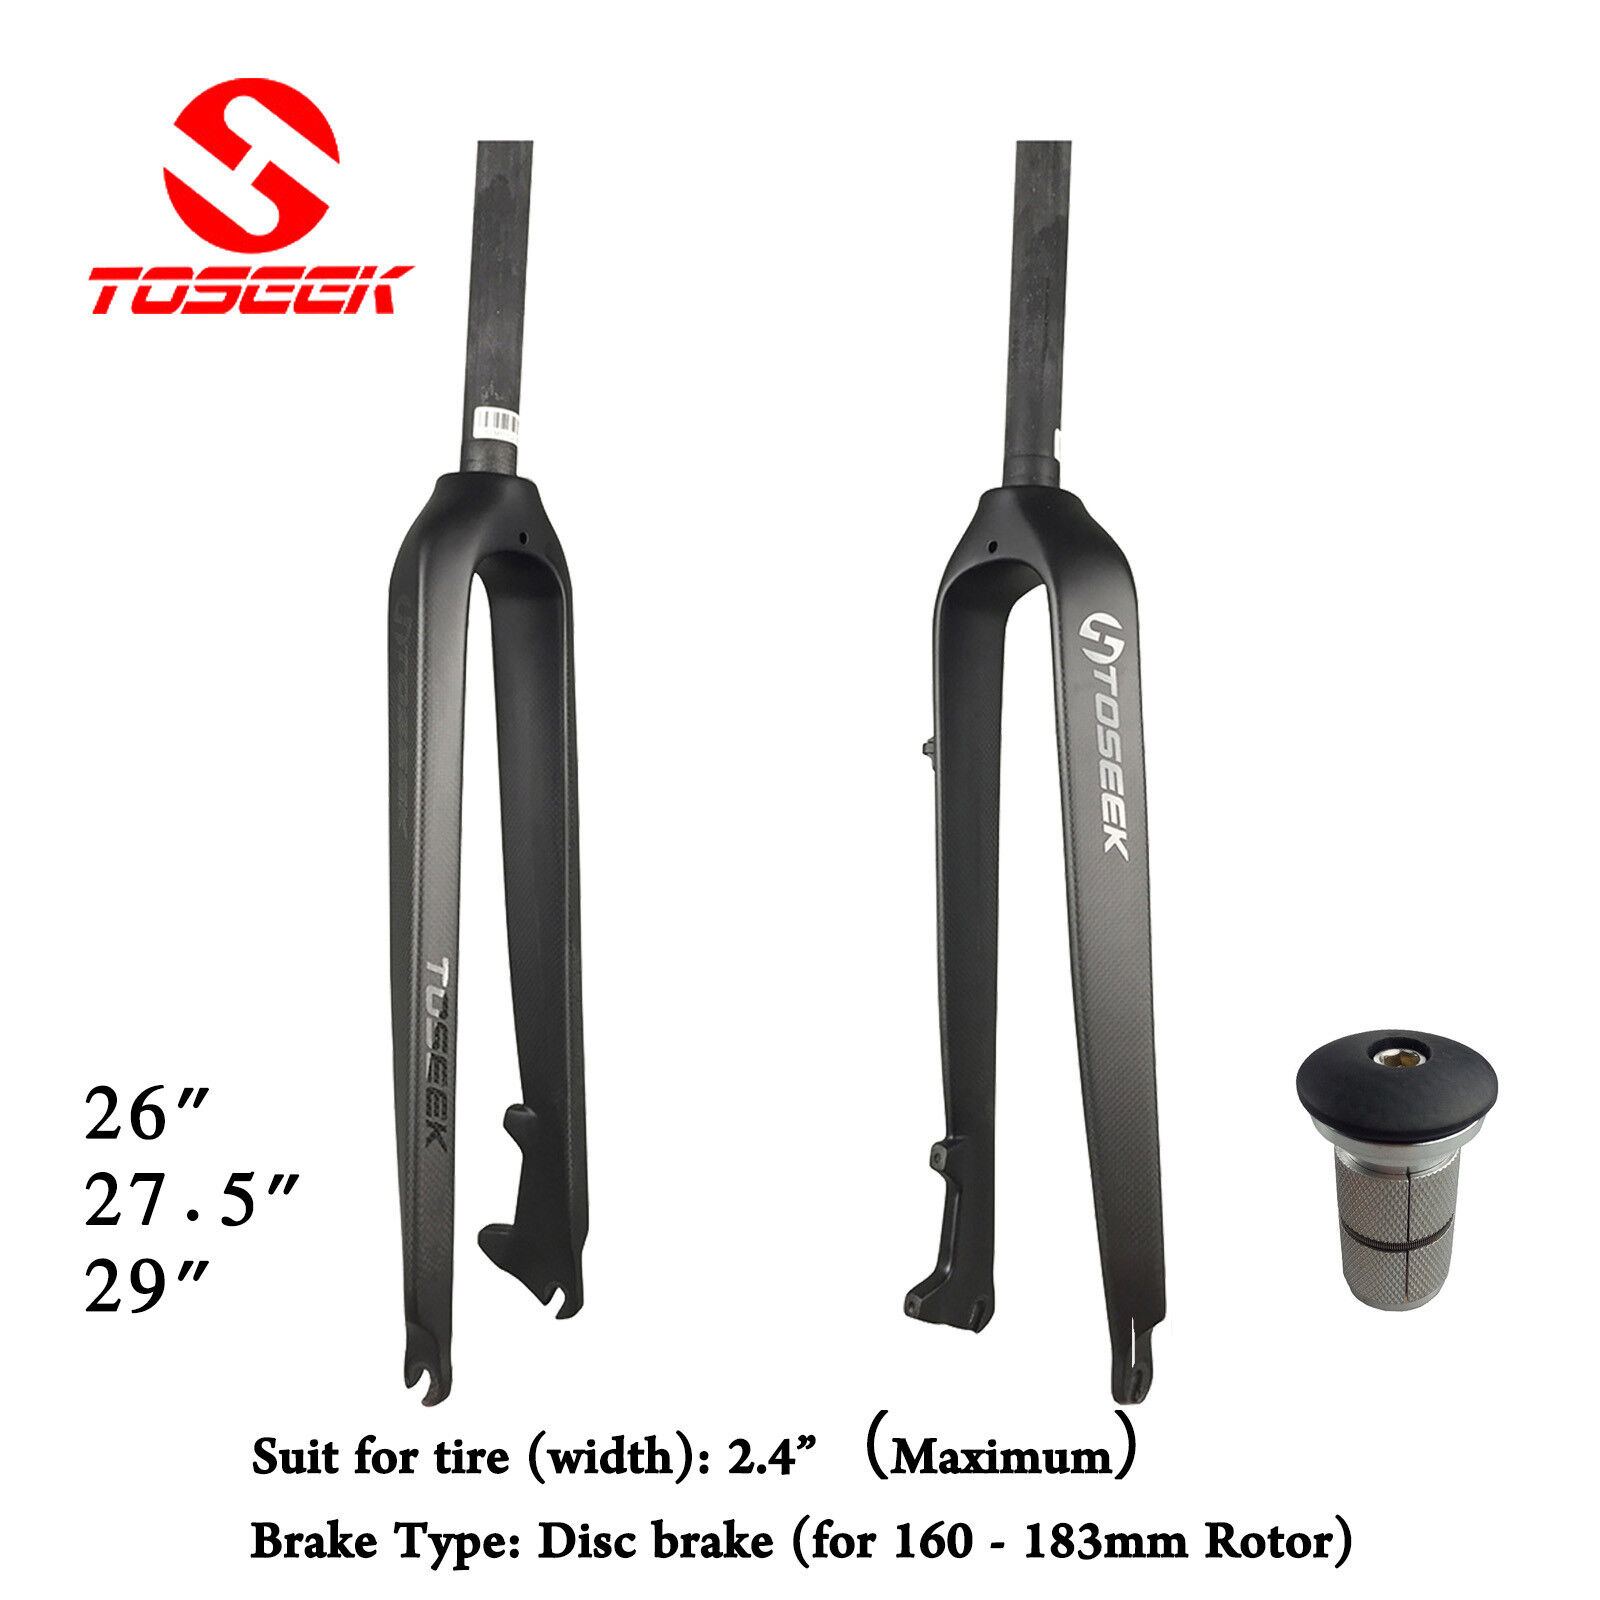 TOSEEK 118 Full Carbon Fiber MTB Fork Disc Brake Rigid Super Light Forks